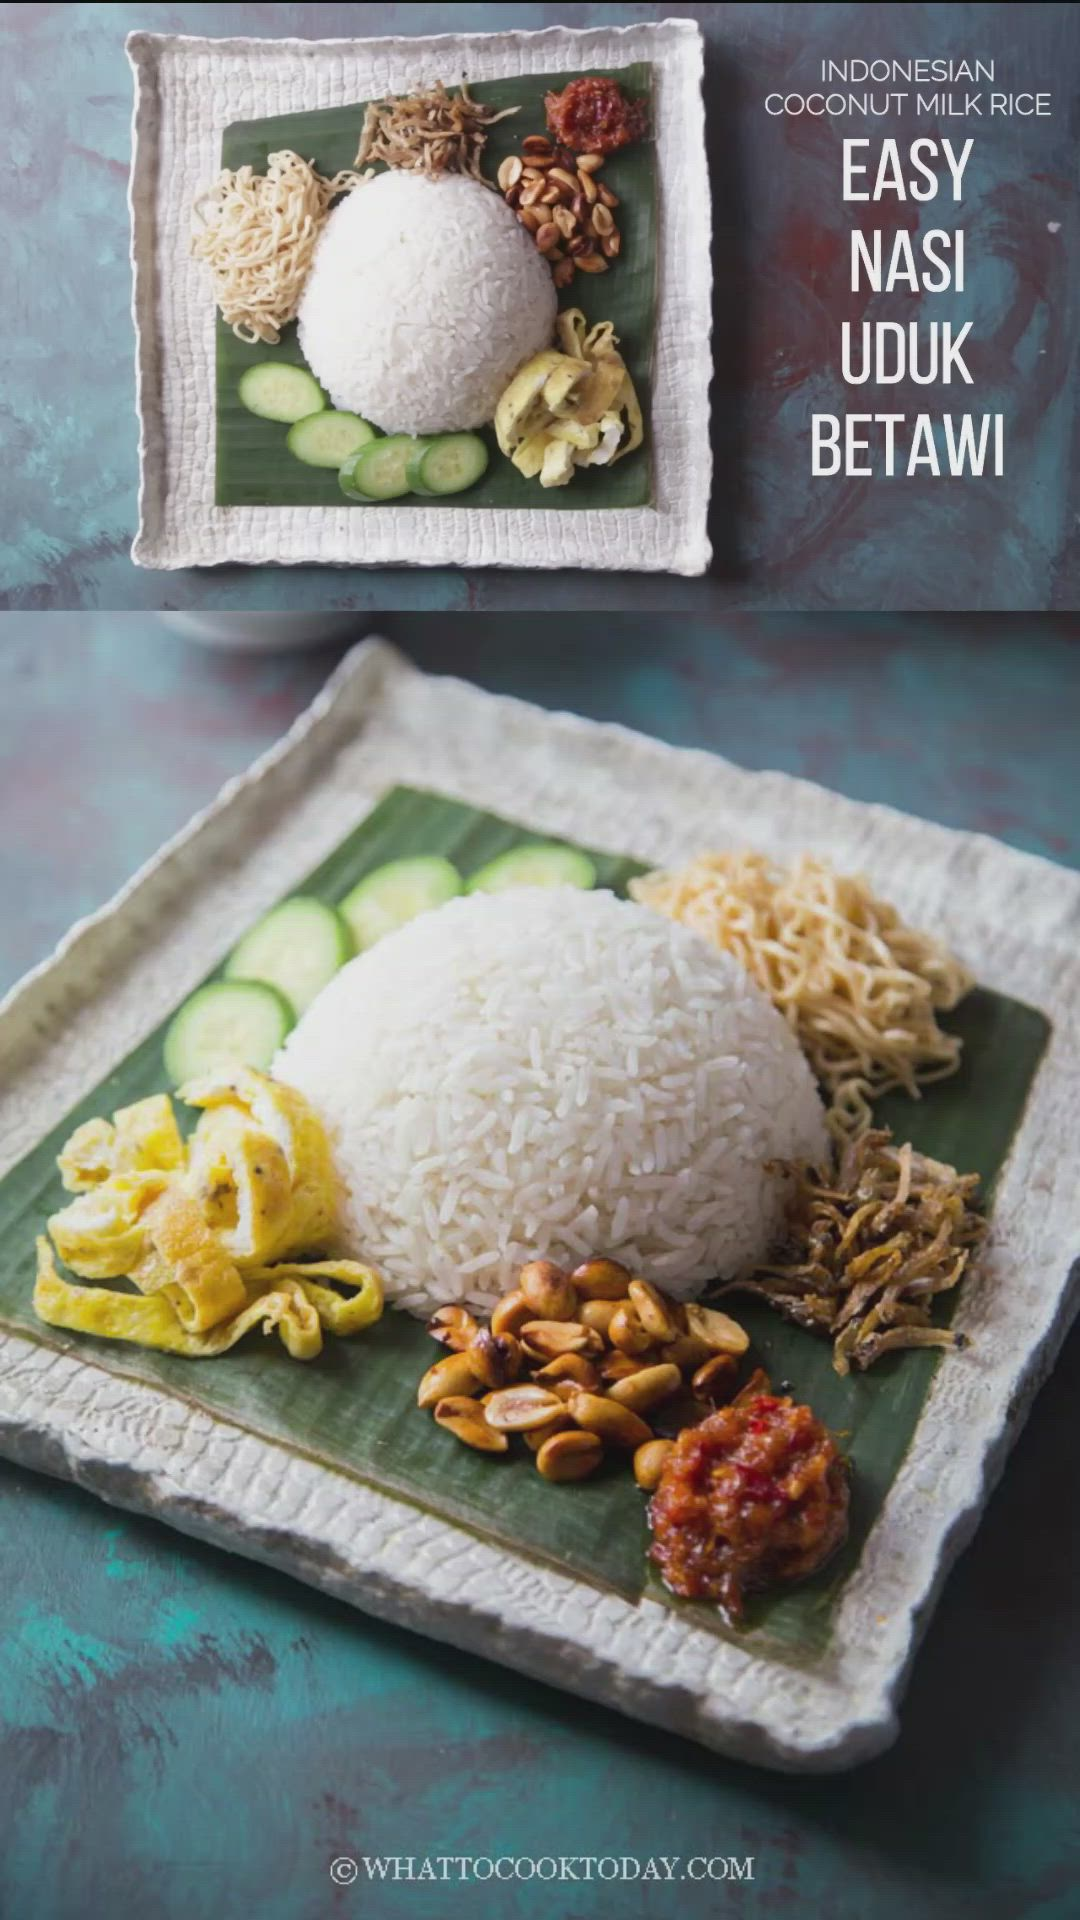 Resep Nasi Uduk Betawi : resep, betawi, Betawi, (Indonesian, Coconut, Rice), [Video], Instant, Asian, Recipes,, Party, Punch